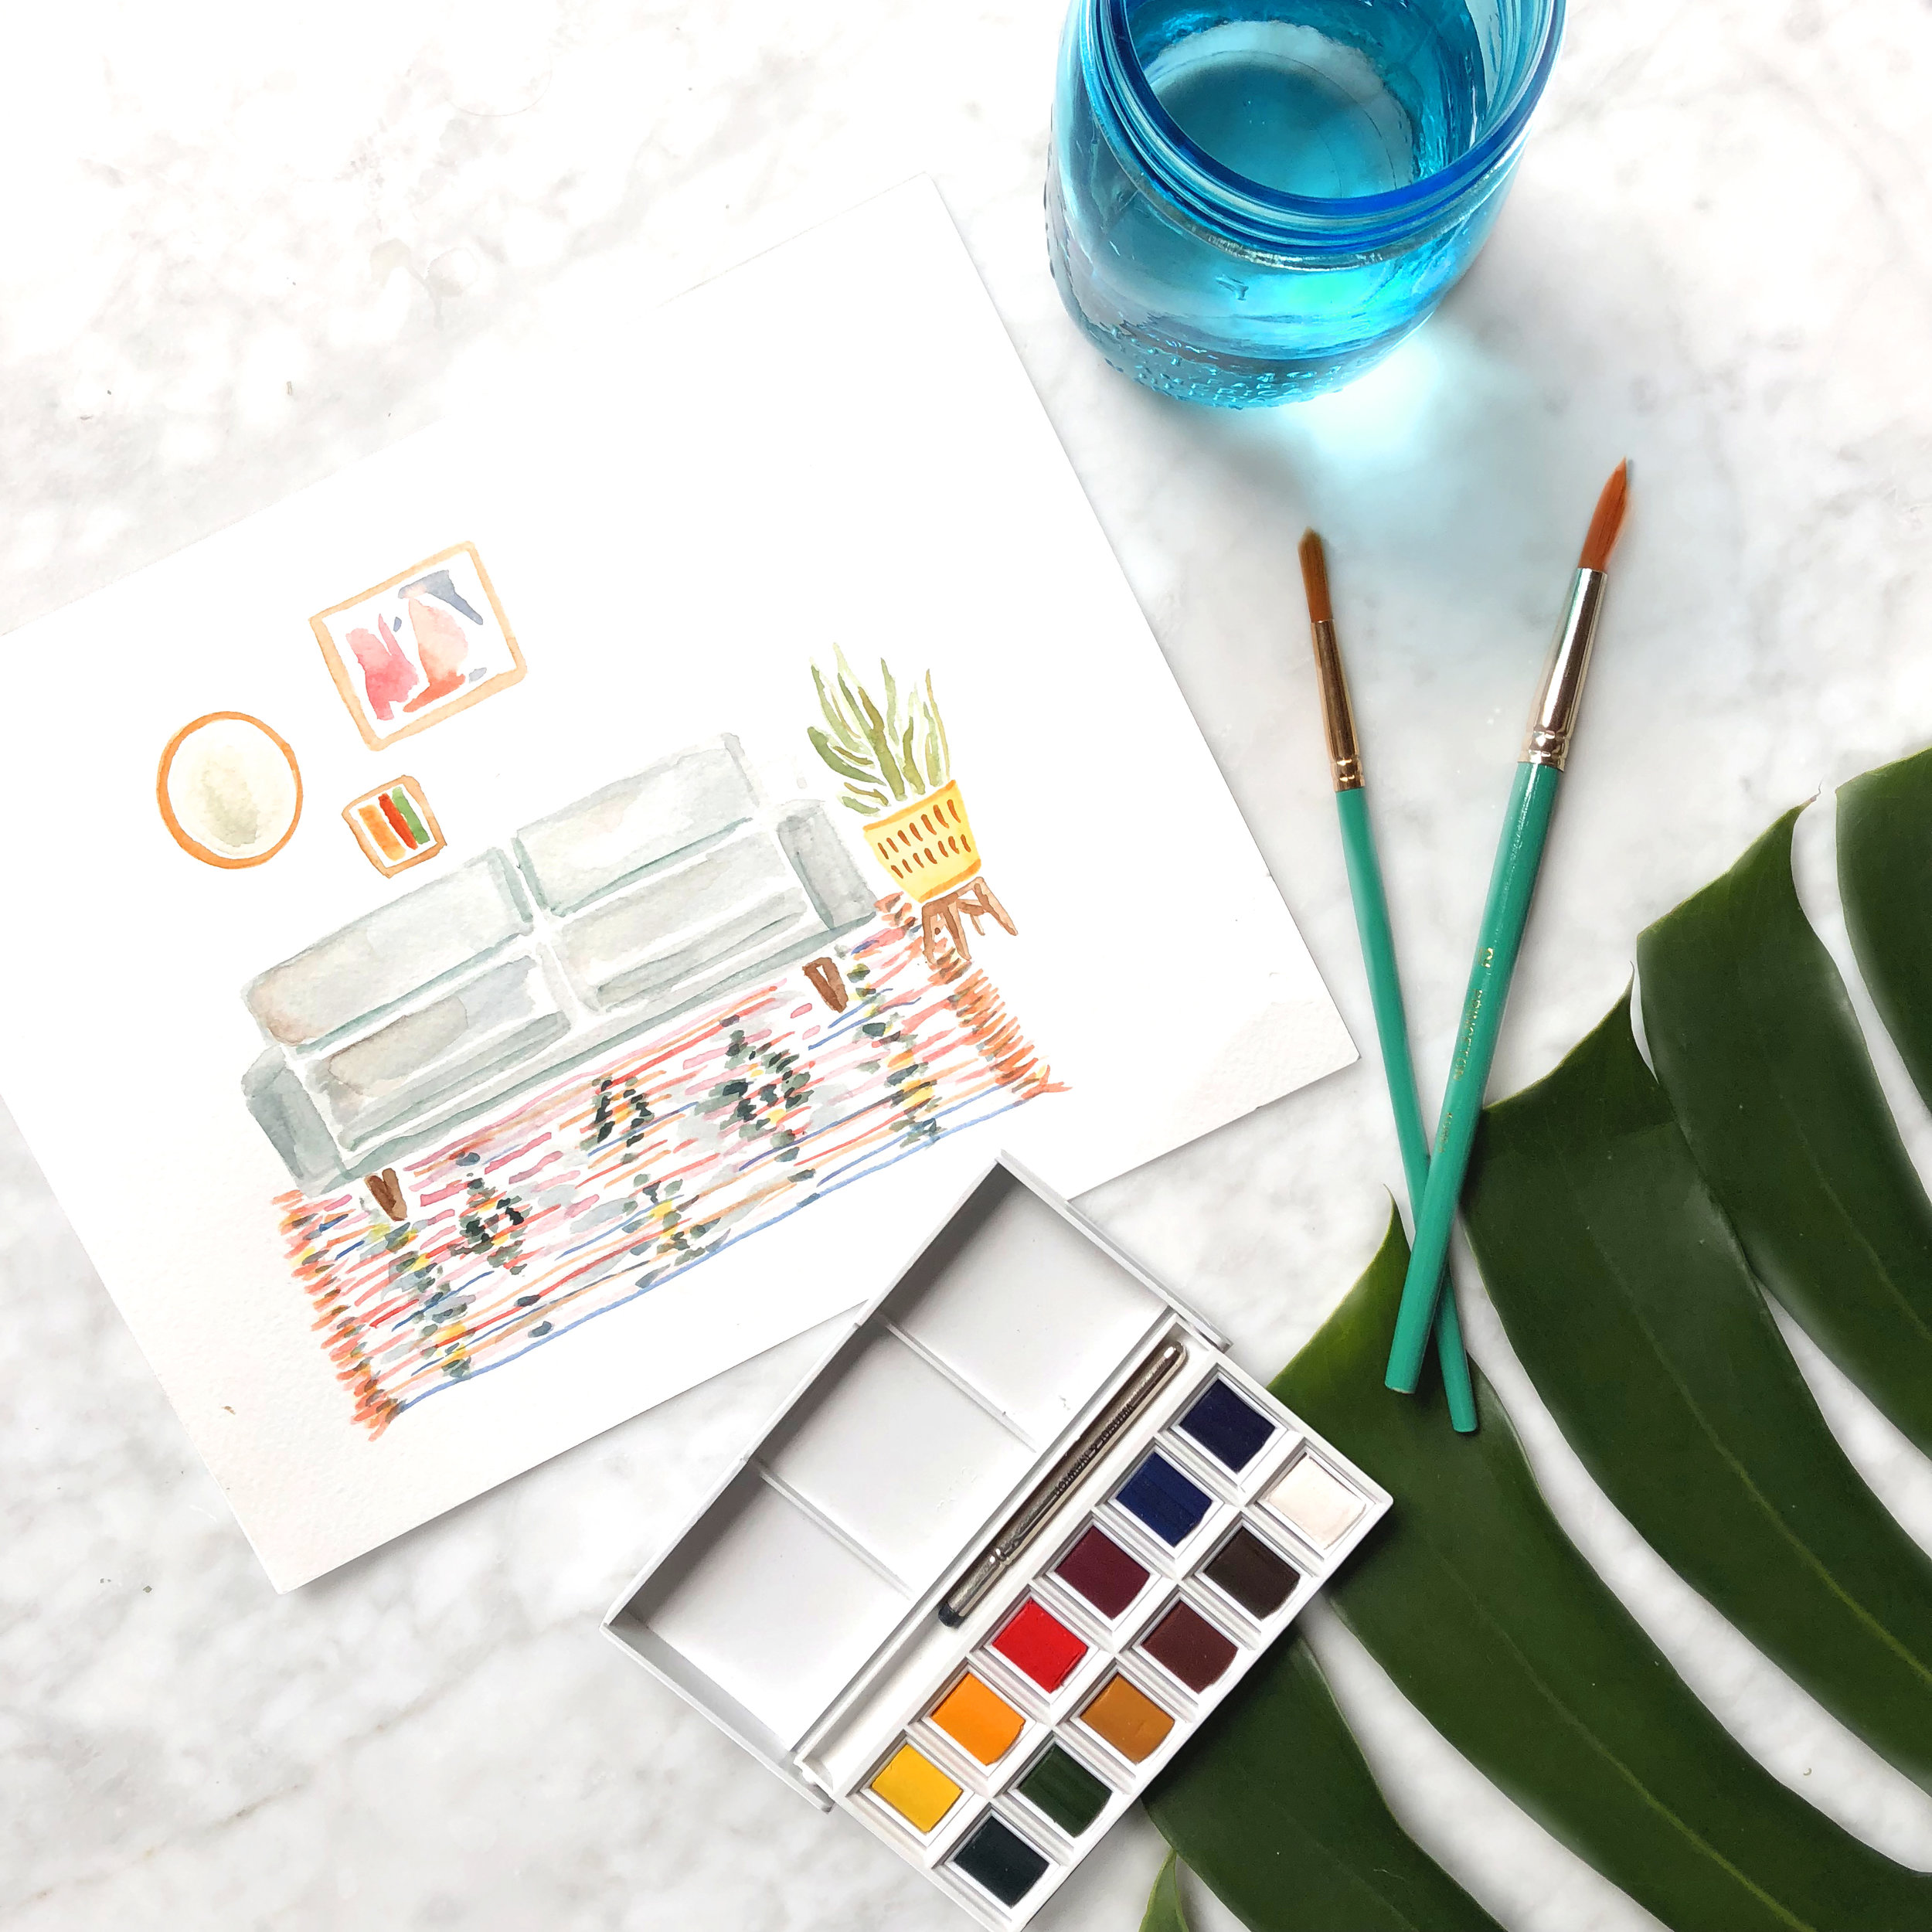 MID CENTURY MODERN WATERCOLOR WORKSHOP - WEST ELM DUMBO